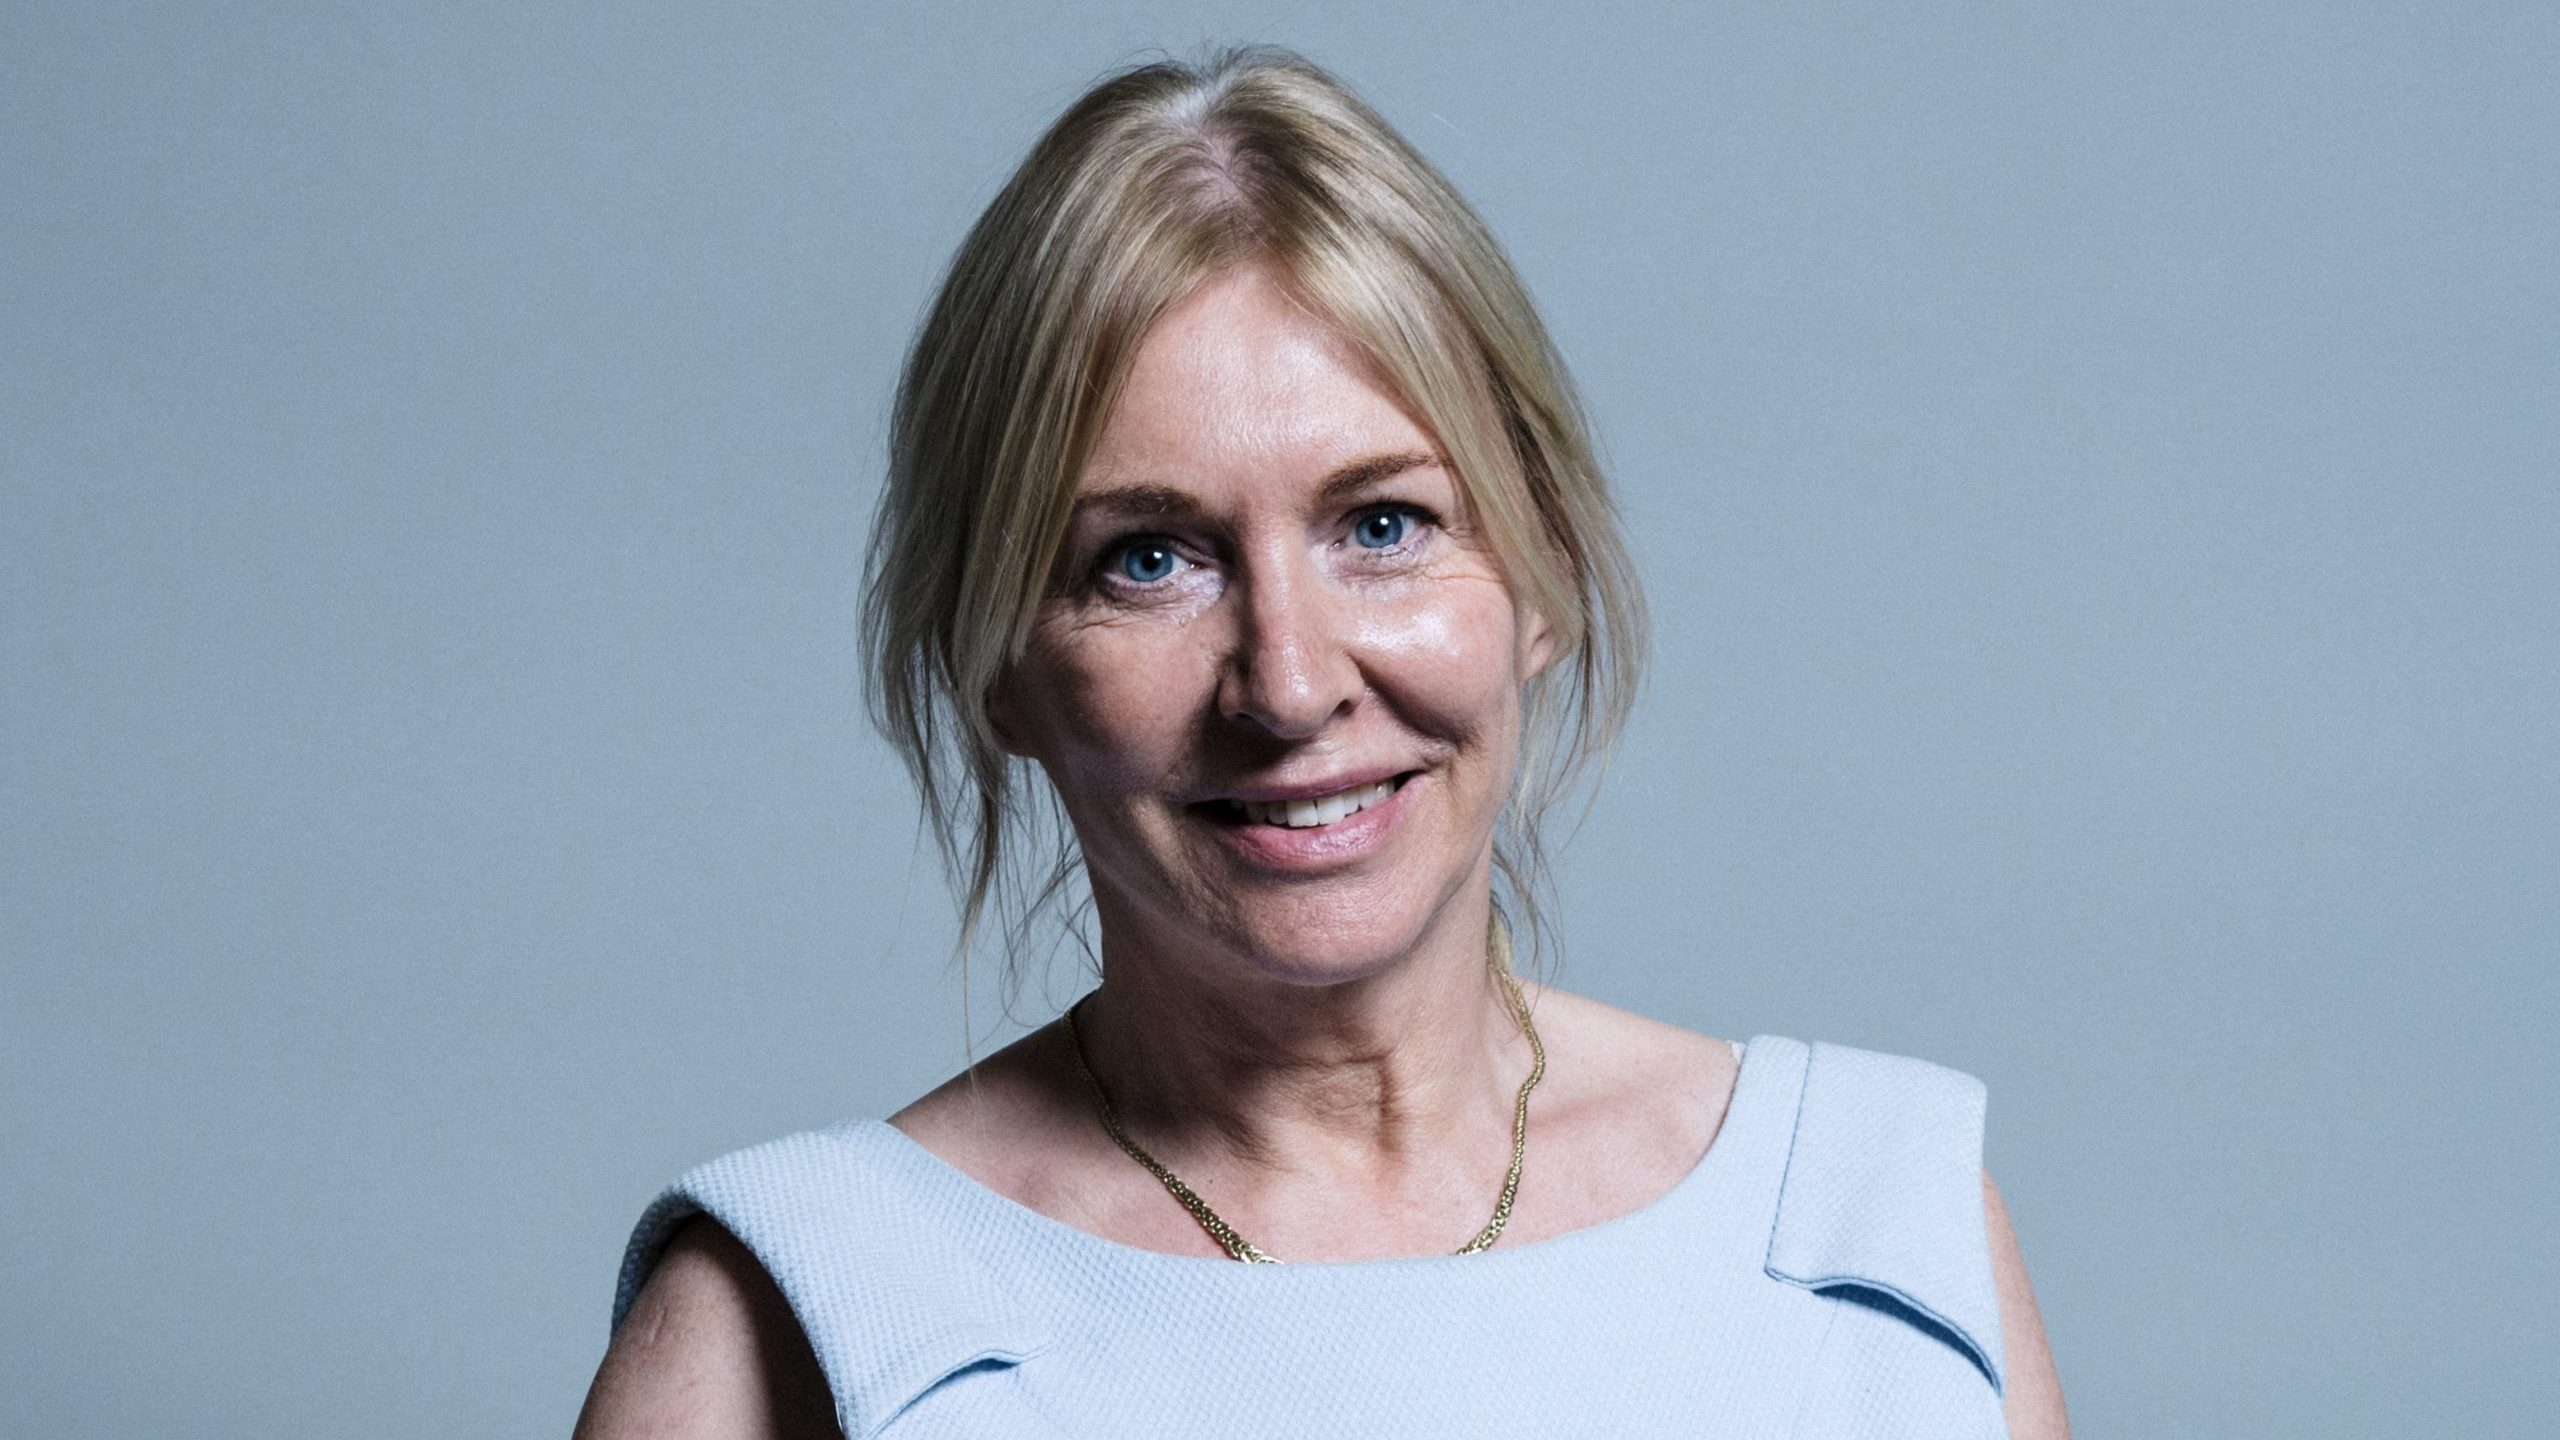 Nadine Dorries joins DCMS from the Department for Health and Social care